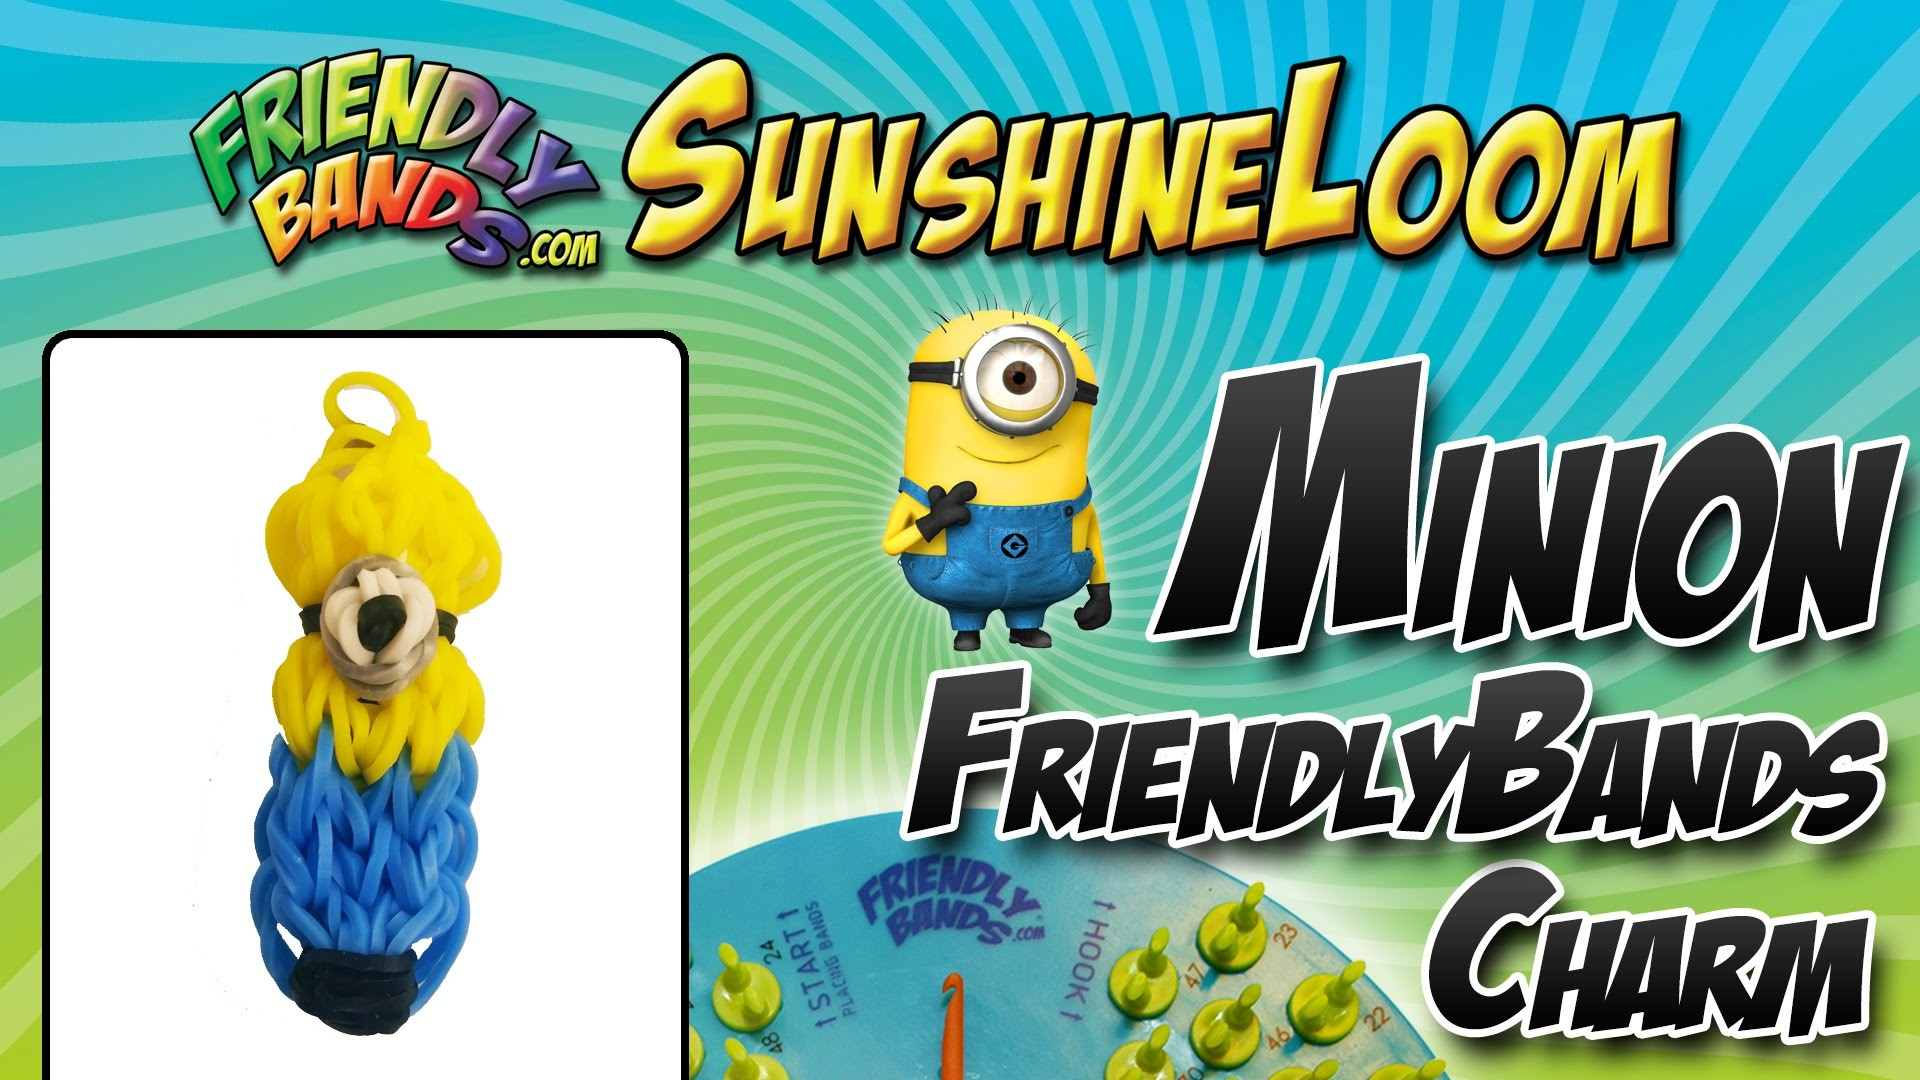 How to Make a FriendlyBand SunshineLoom - Minion Charm Tutorial